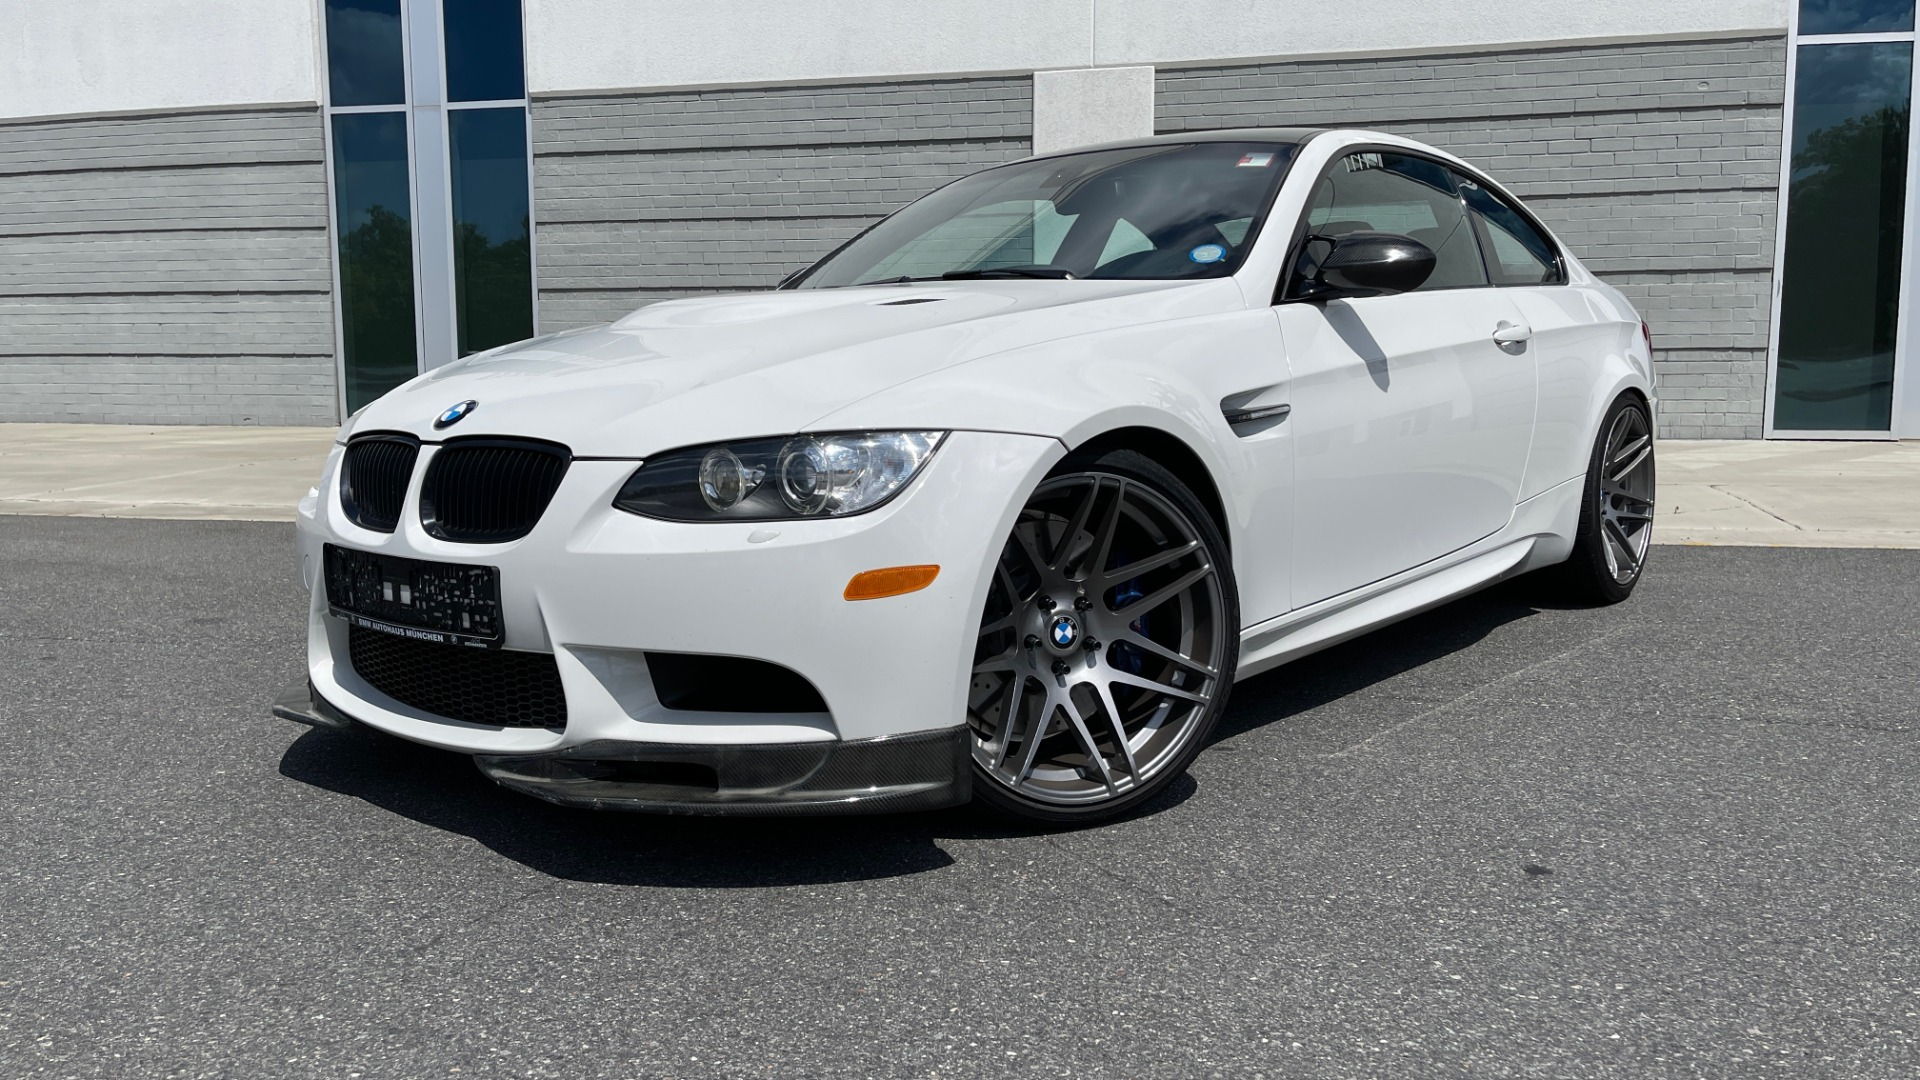 Used 2011 BMW M3 PREMIUM COUPE / CLD WTHR / TECH / SMARTPHONEINT / PARK ASST for sale Sold at Formula Imports in Charlotte NC 28227 1